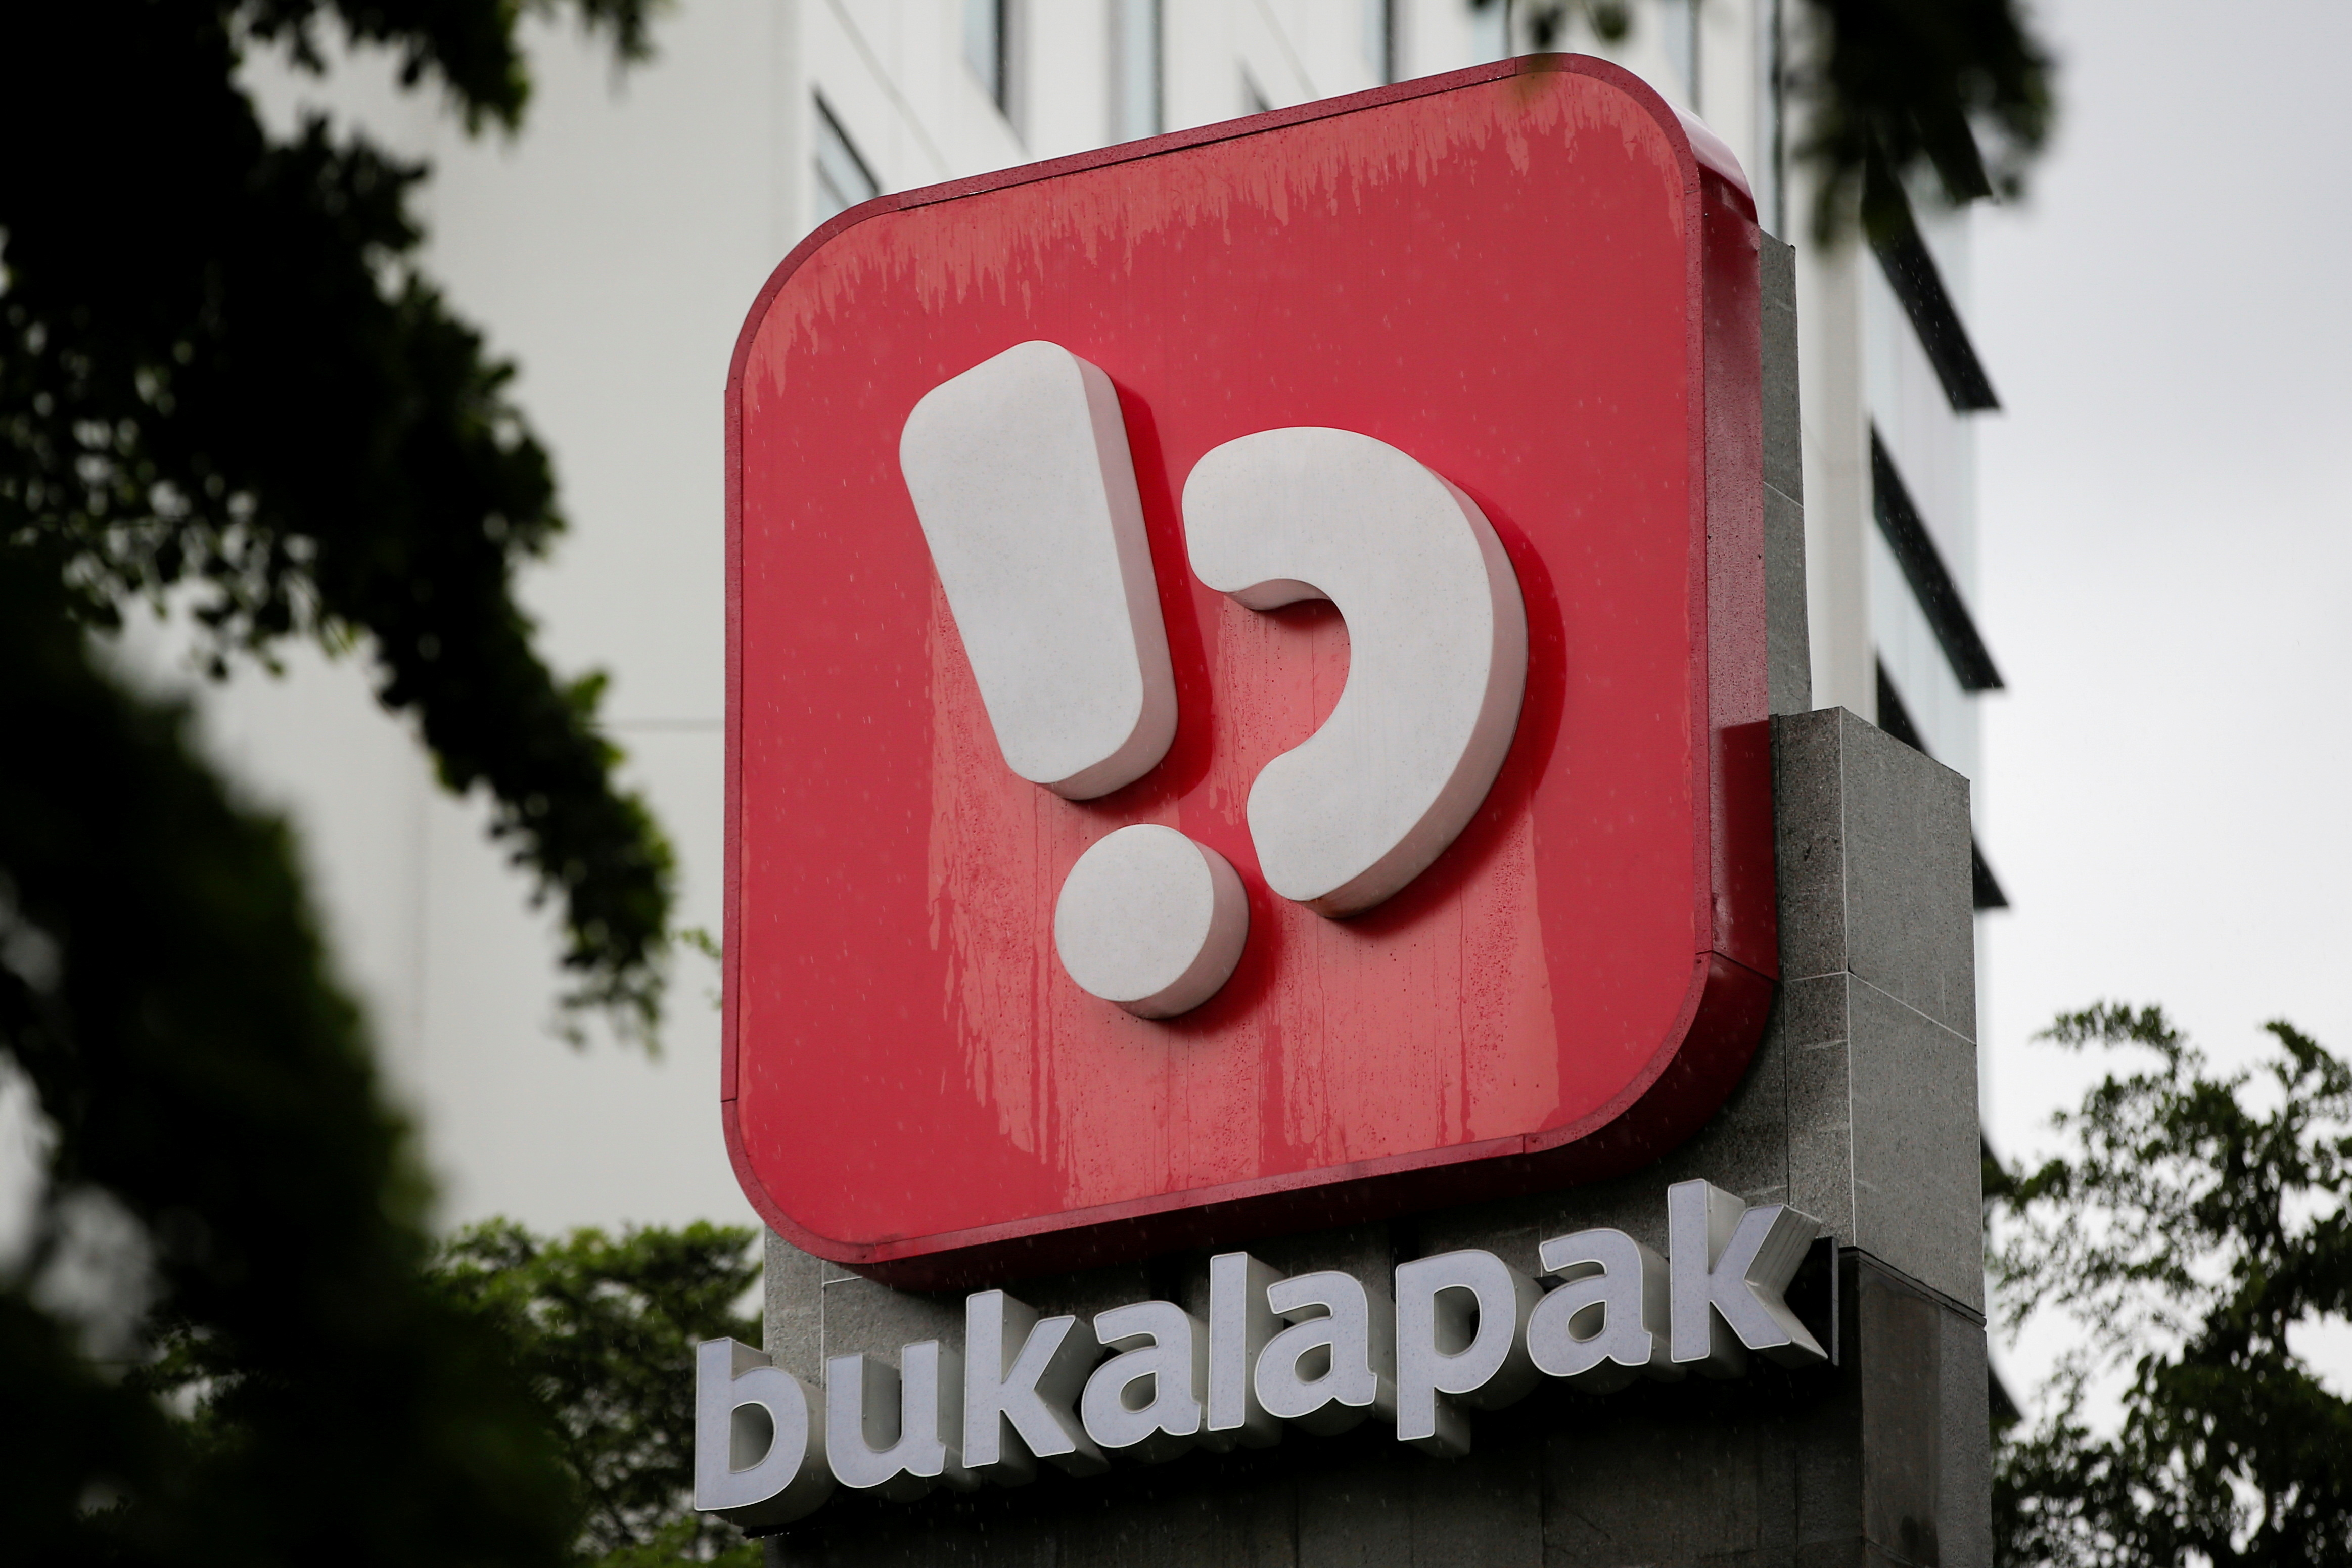 Logo of Bukalapak, an Indonesian e-commerce firm, is seen outside its headquarters in Jakarta, Indonesia, June 16, 2021. REUTERS/Willy Kurniawan